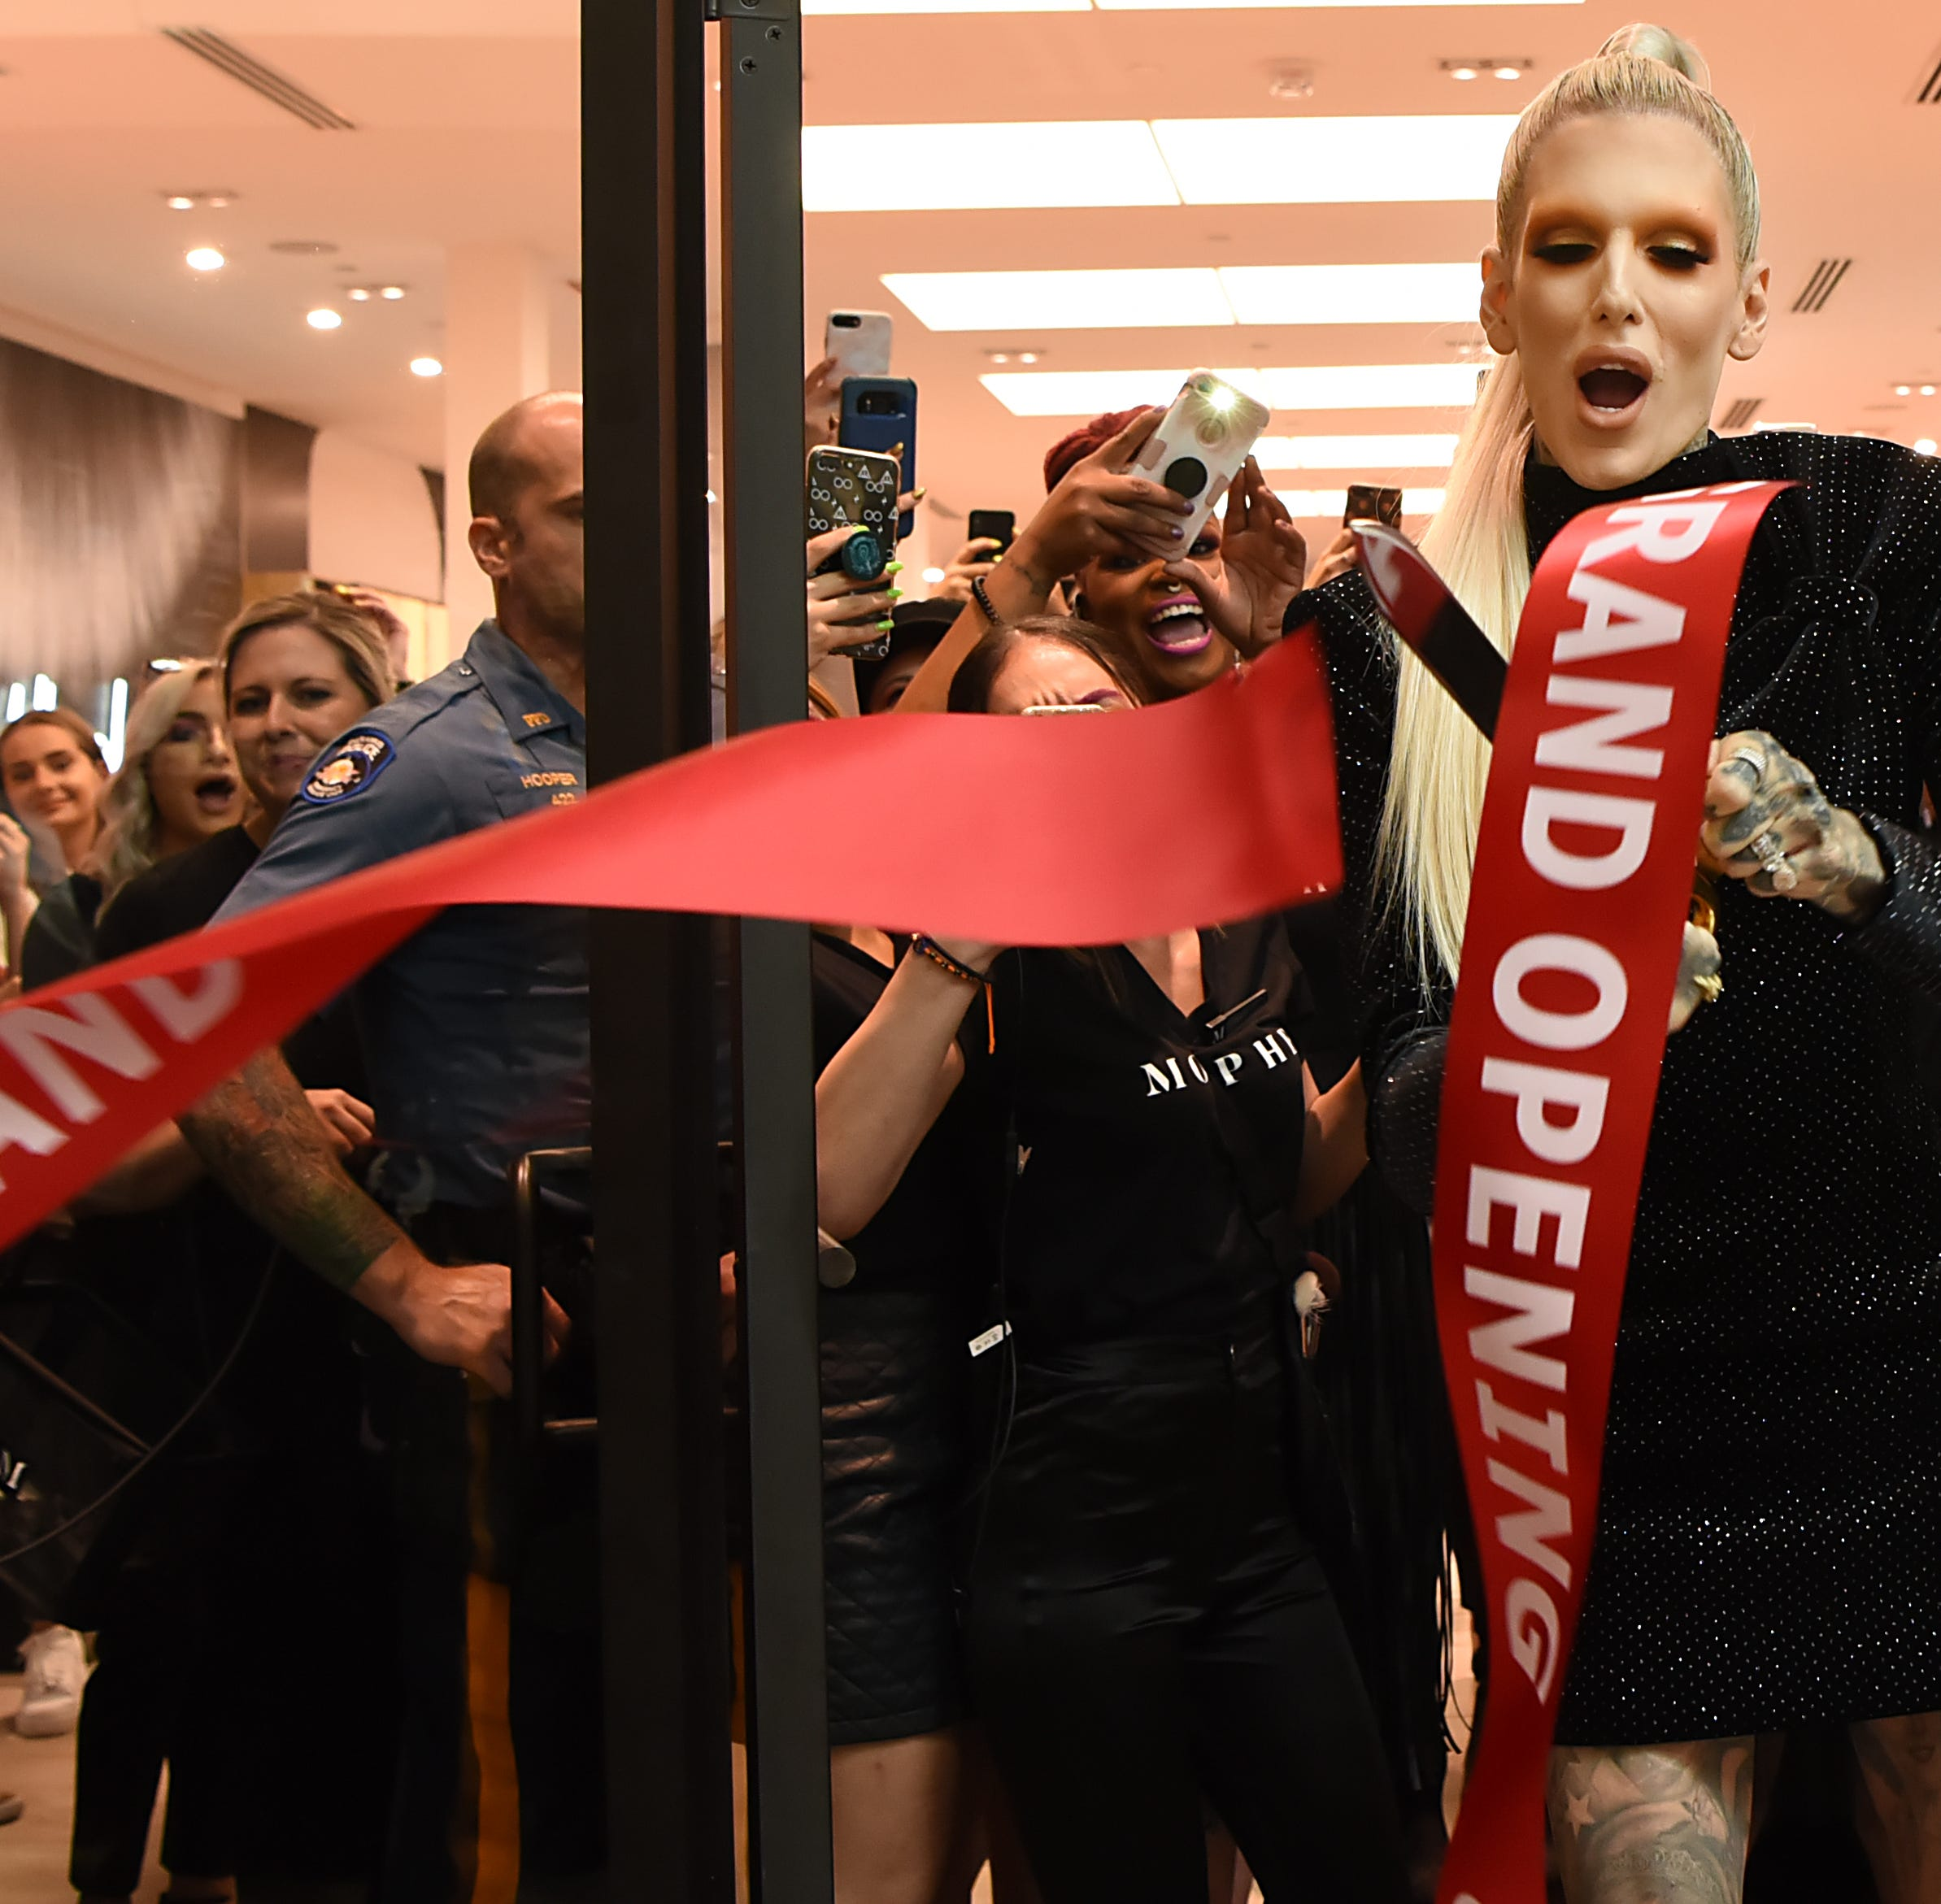 Jeffree Star draws thousands to Garden State Plaza for Morphe store opening